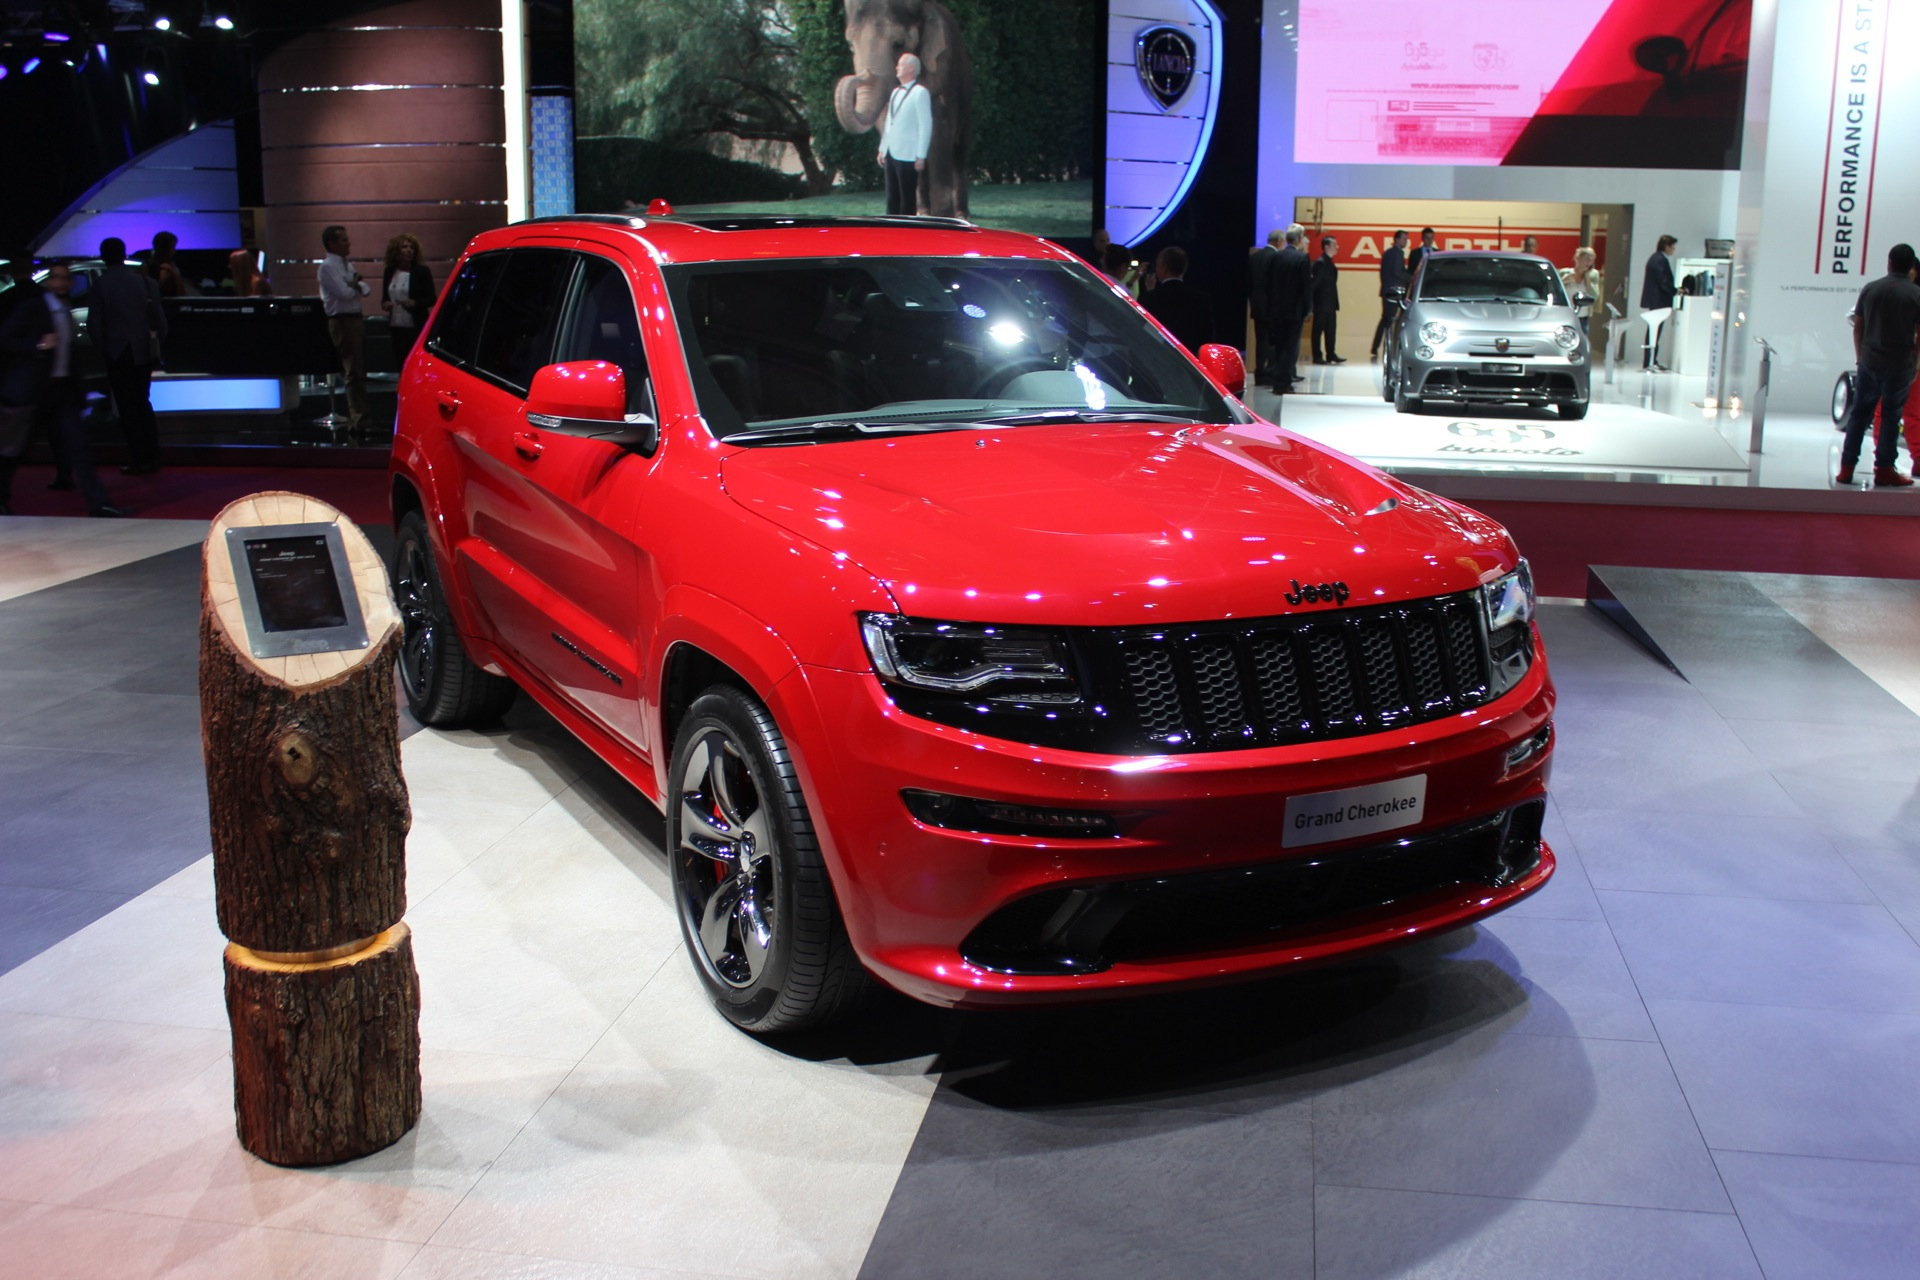 2015 jeep grand cherokee srt red vapor limited edition euro spec 2014 paris auto show 100483559. Black Bedroom Furniture Sets. Home Design Ideas